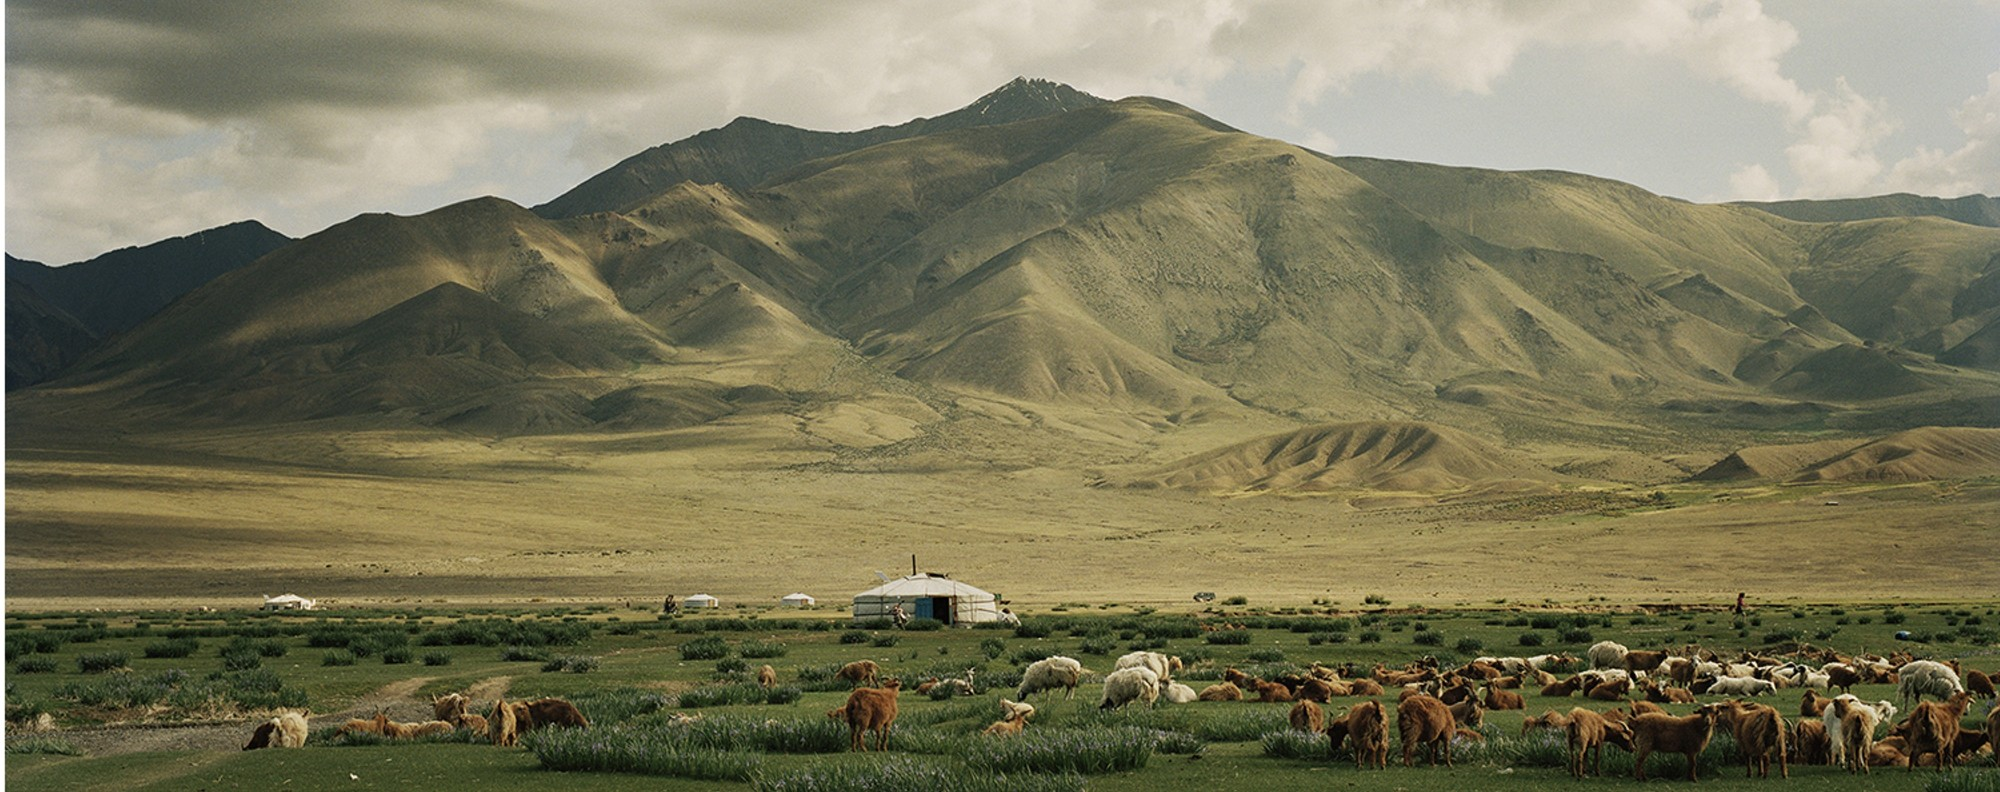 A camp close to Üüreg Lake, in Mongolia. Picture: Frédéric Lagrange